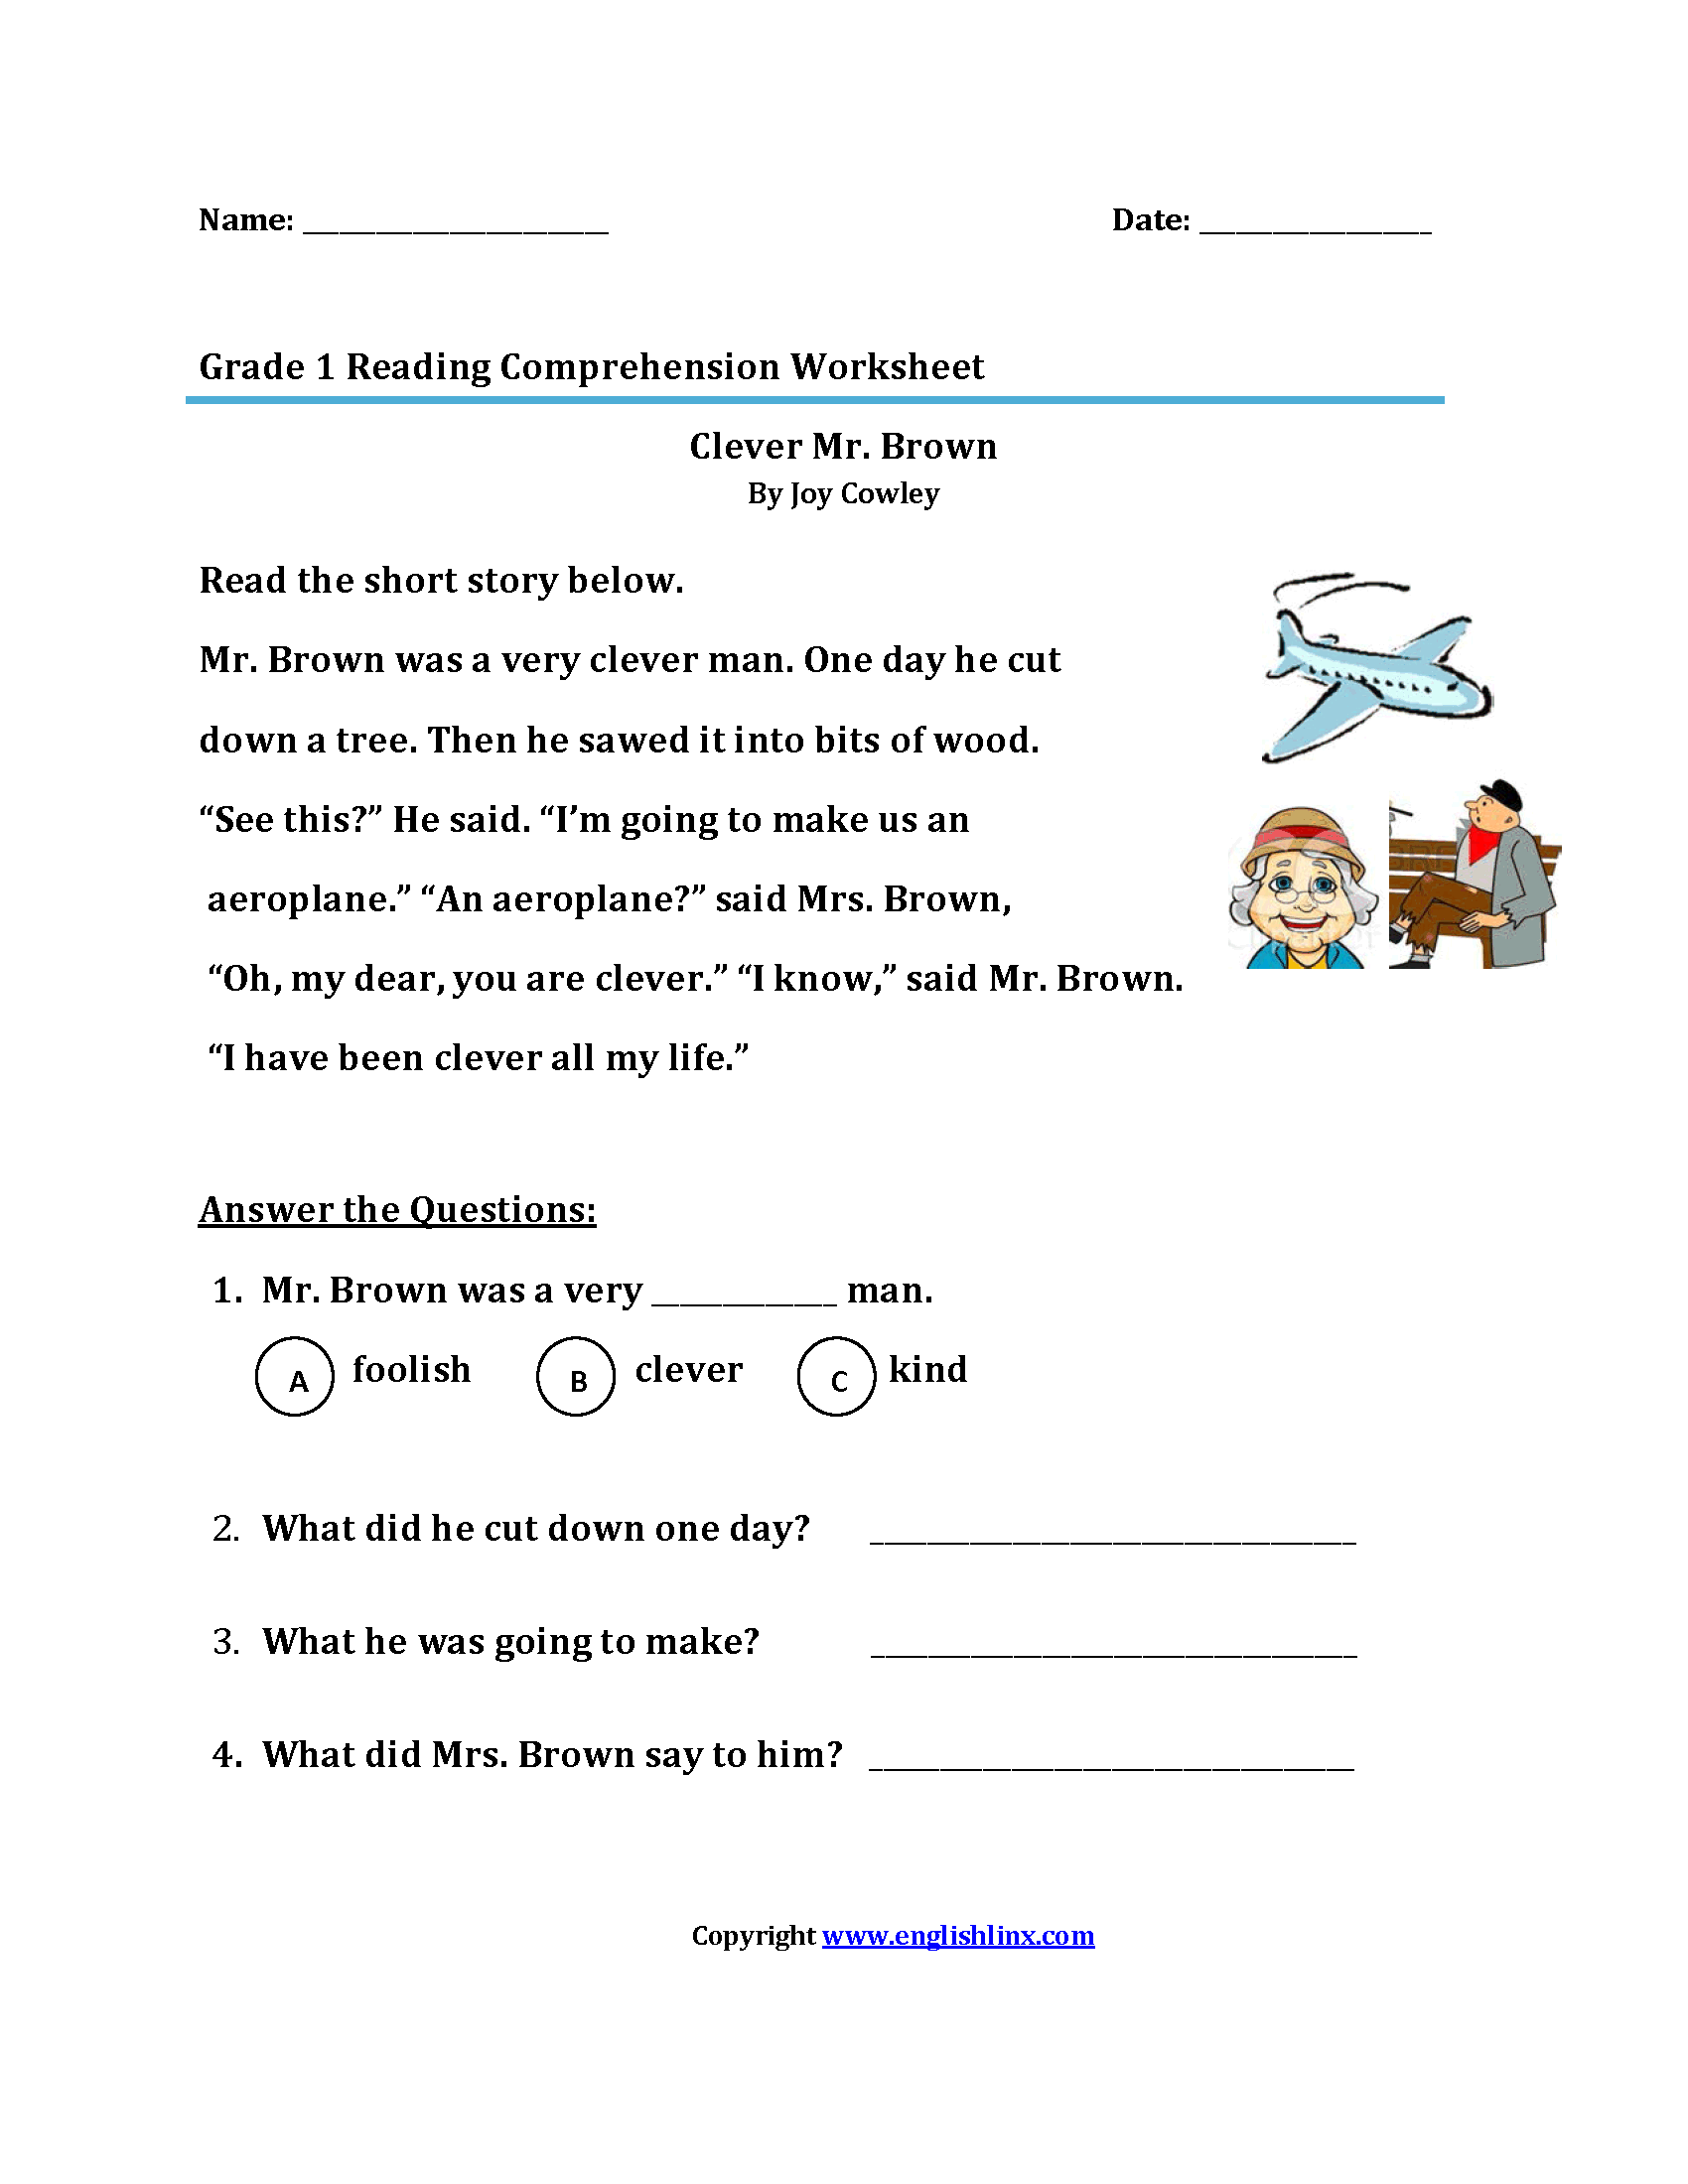 Worksheet Reading Passage For 1st Grade reading worksheets first grade worksheets